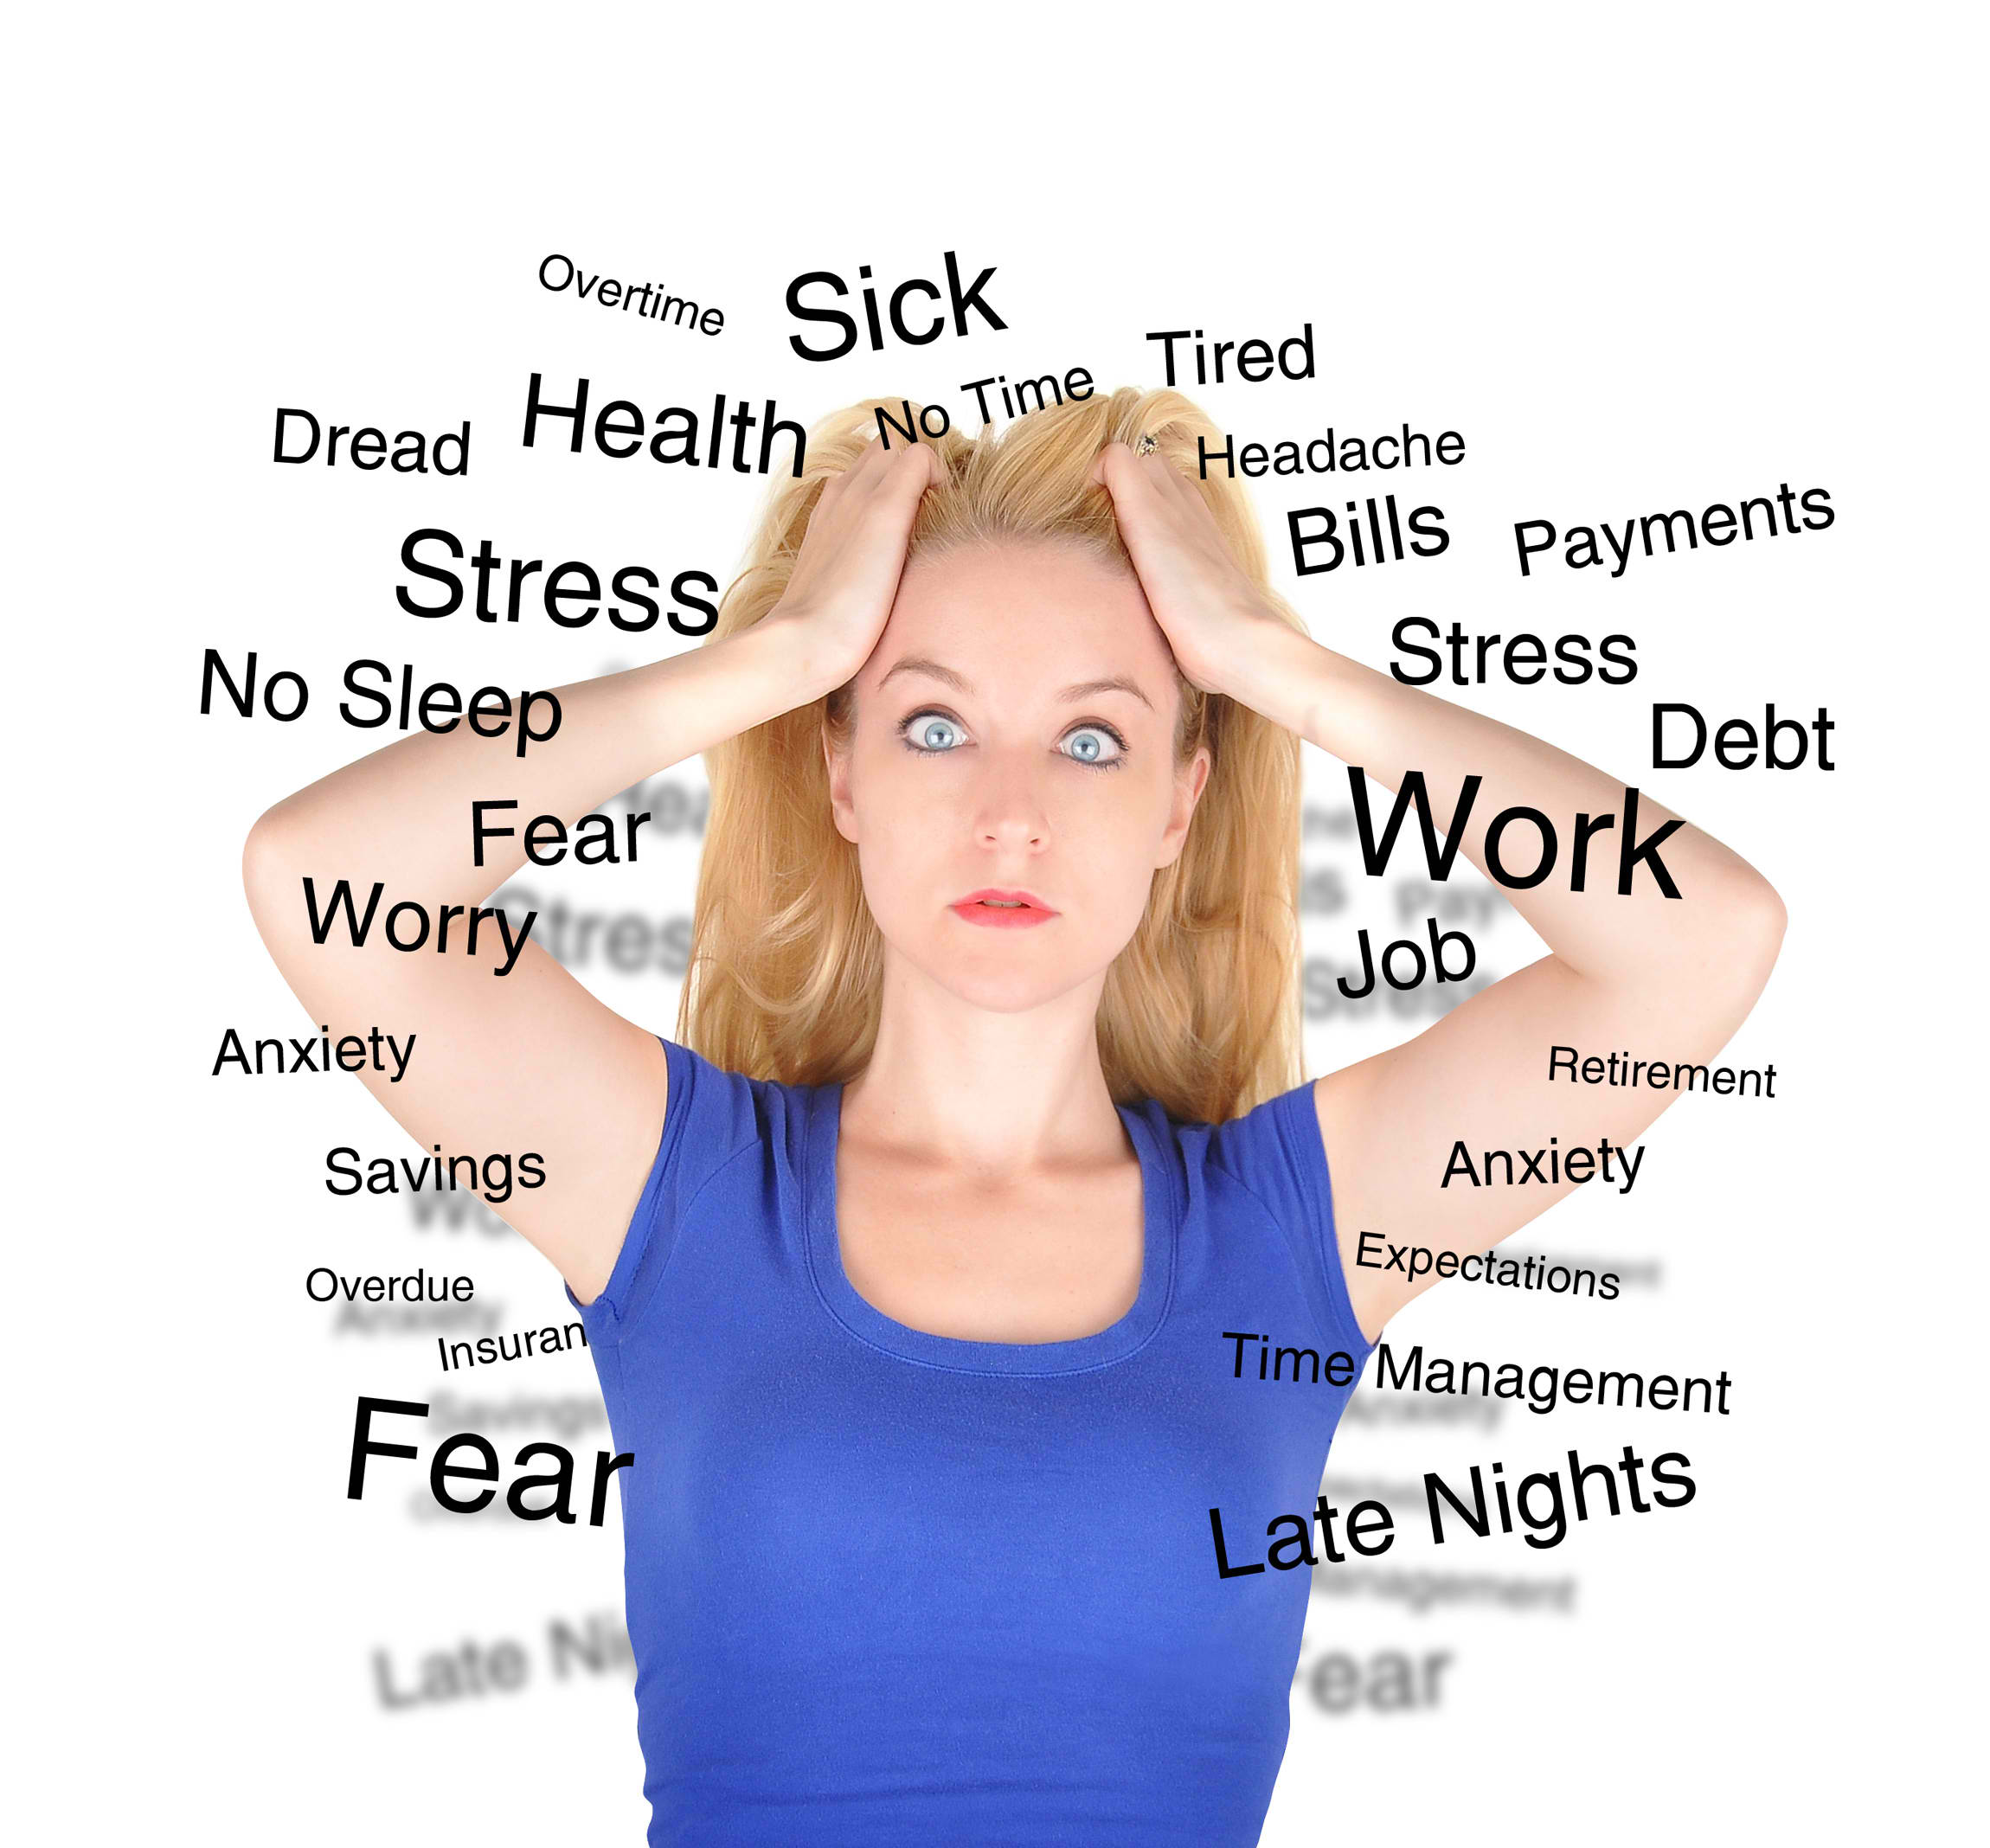 The common stressors and factors affecting